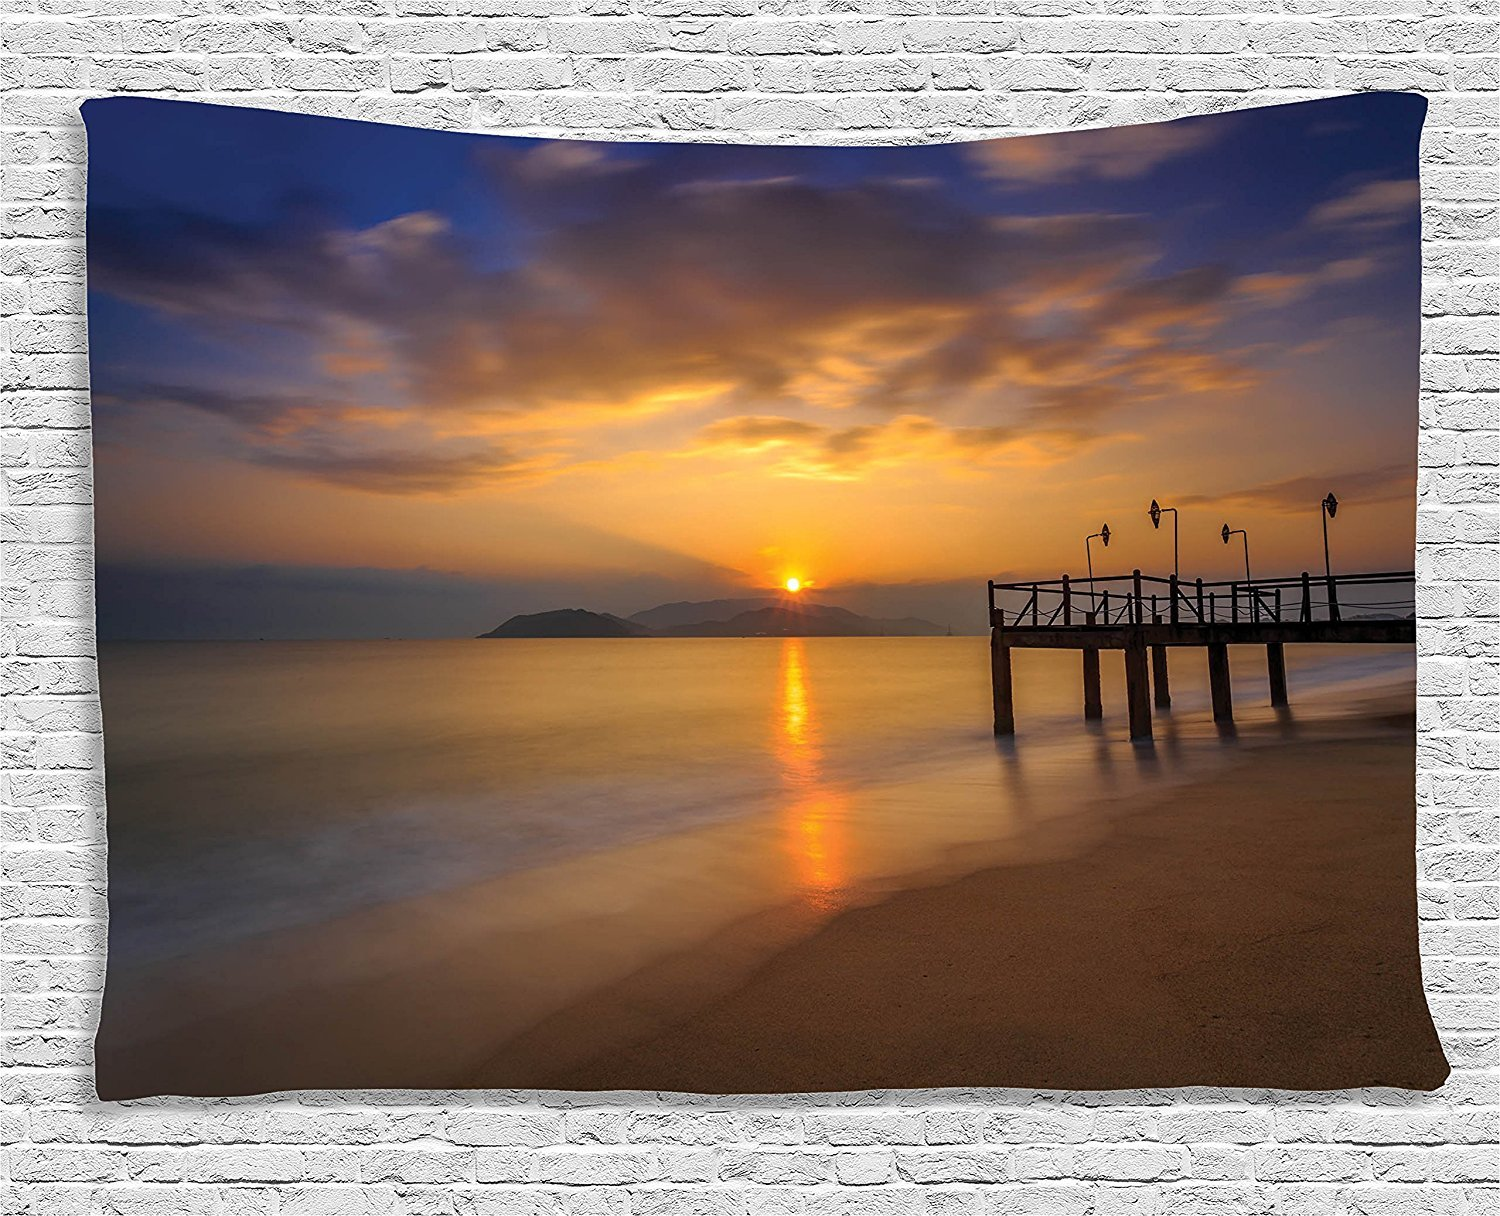 asddcdfdd Scenery House Decor Tapestry, Surreal Magical Overcast Air with Sun Shore in Ocean Filtered Photo, Wall Hanging for Bedroom Living Room Dorm, 80WX60L Inches, Cream Blue